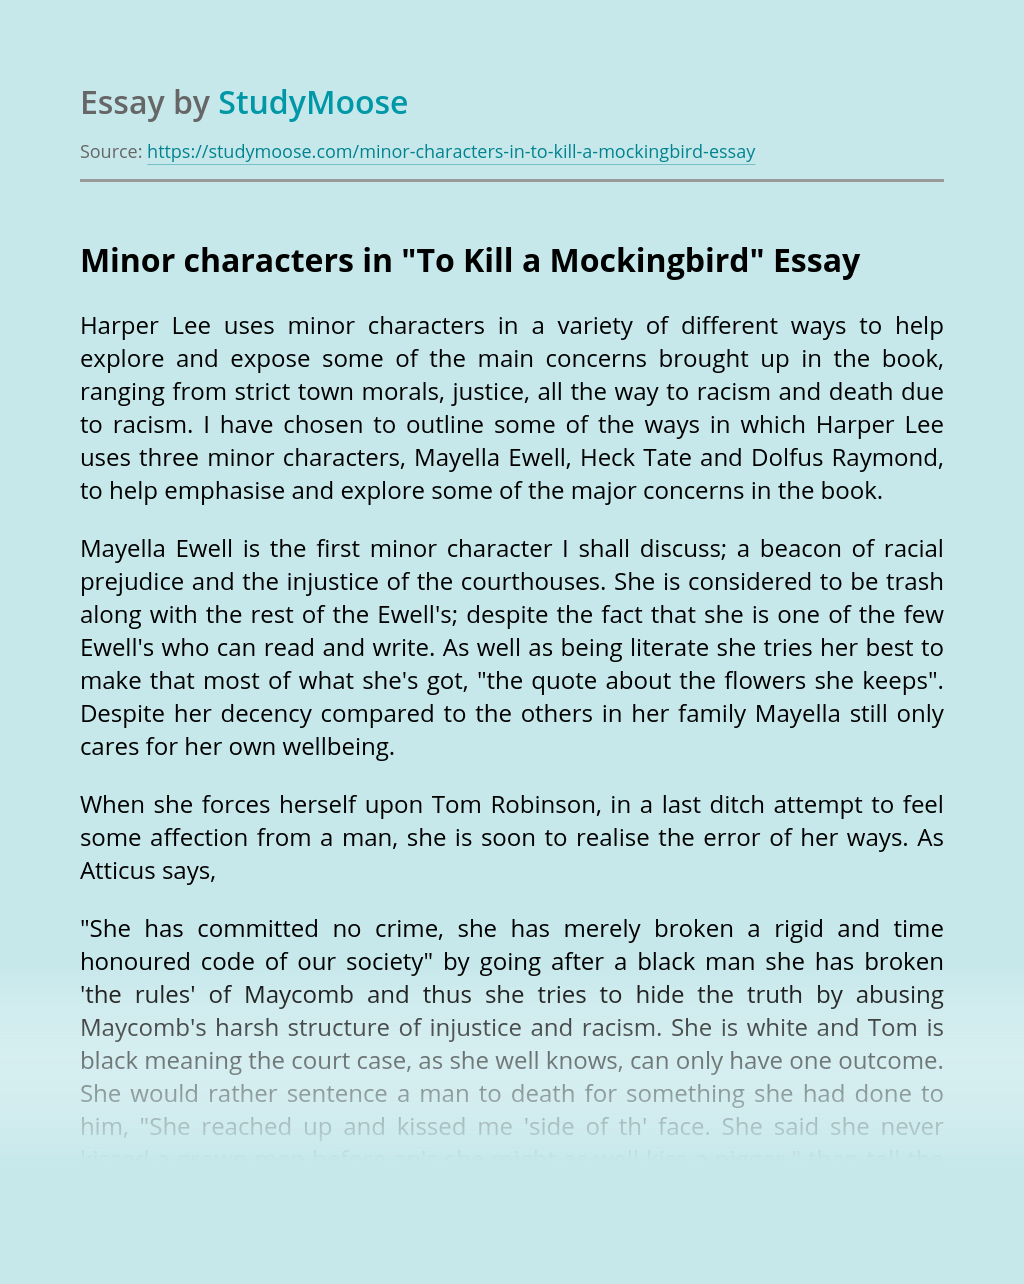 Minor characters in